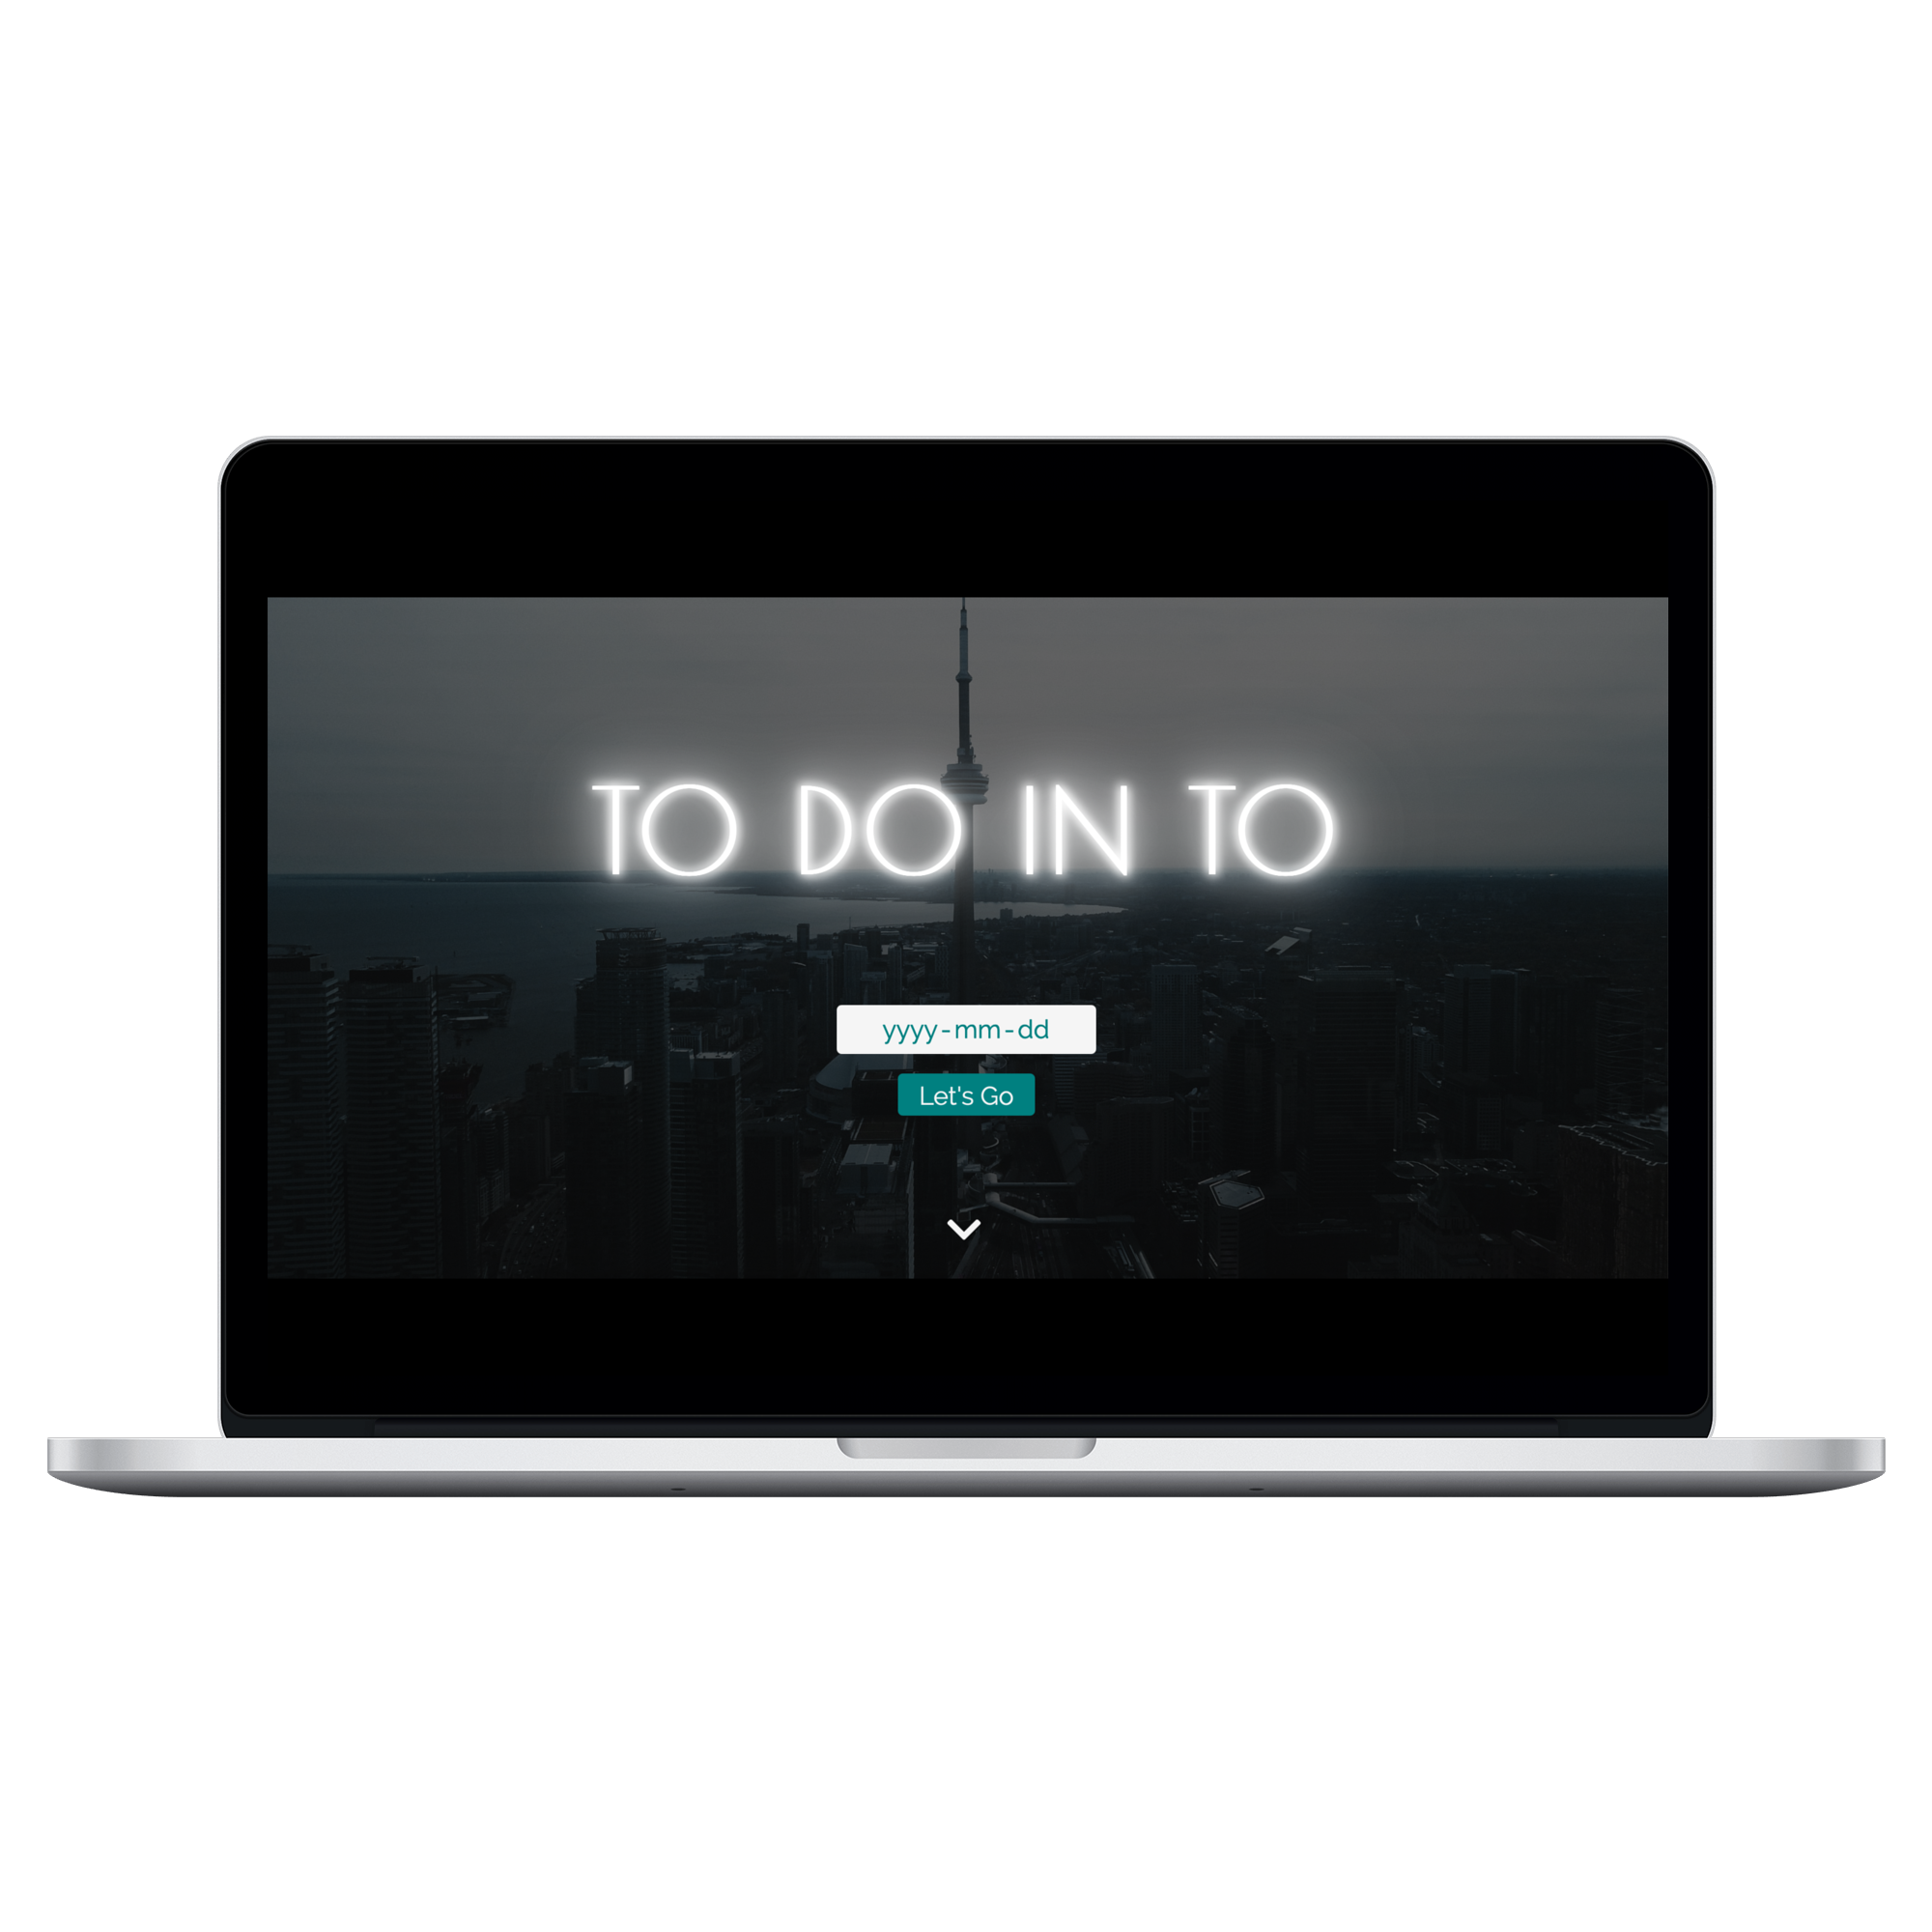 Mockup of To Do in TO on 15 inch Macbook Pro